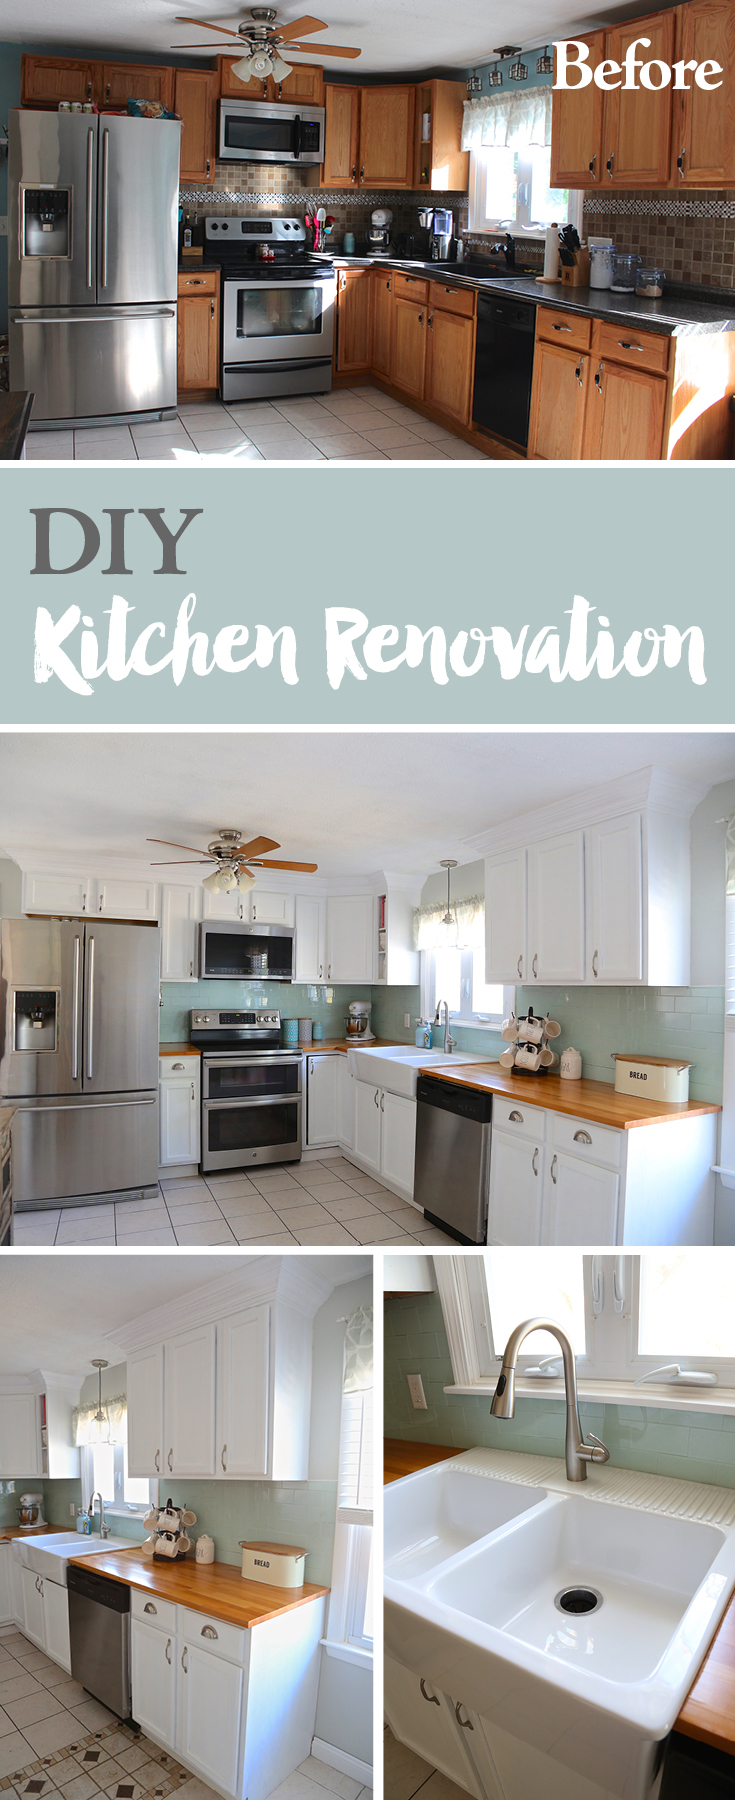 DIY Kitchen Renovation.jpg